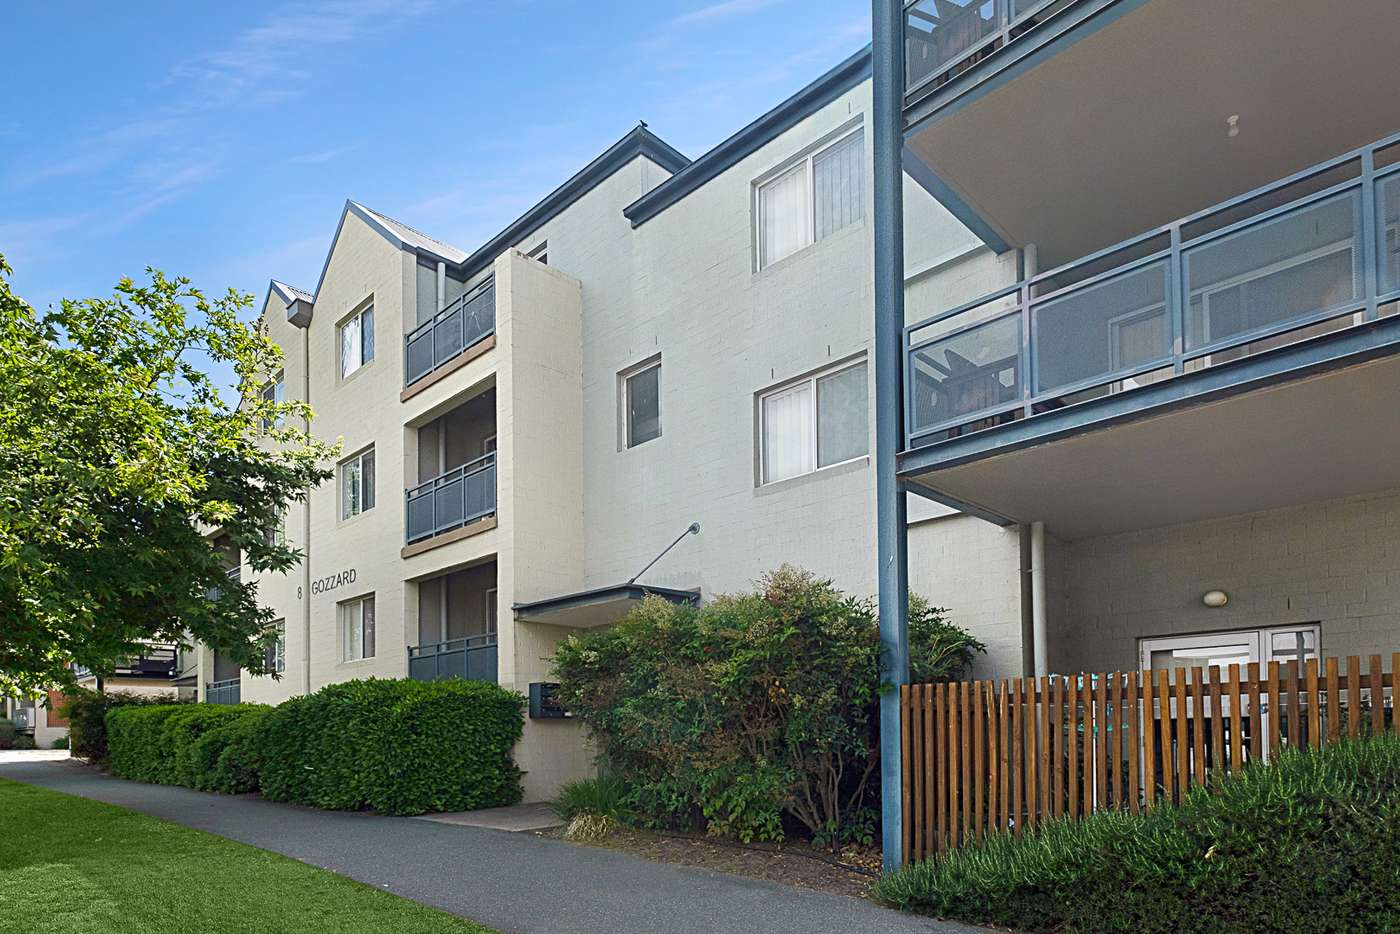 Main view of Homely apartment listing, 6/80 Gozzard Street, Gungahlin ACT 2912